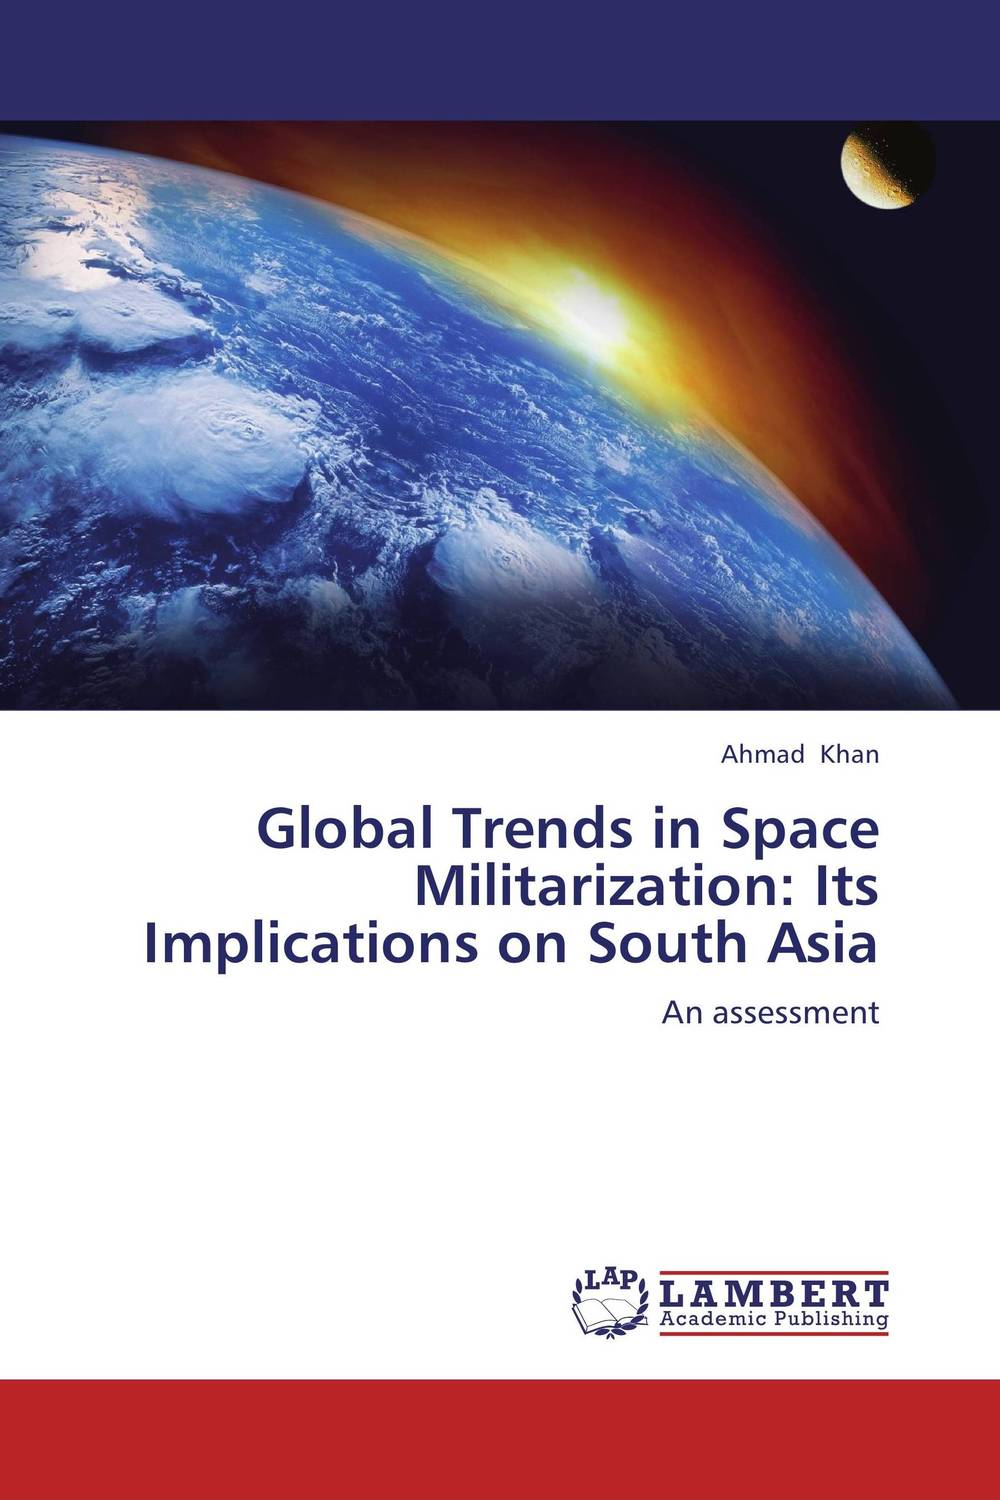 Global Trends in Space Militarization: Its Implications on South Asia ishak mesic global trends in retail trade